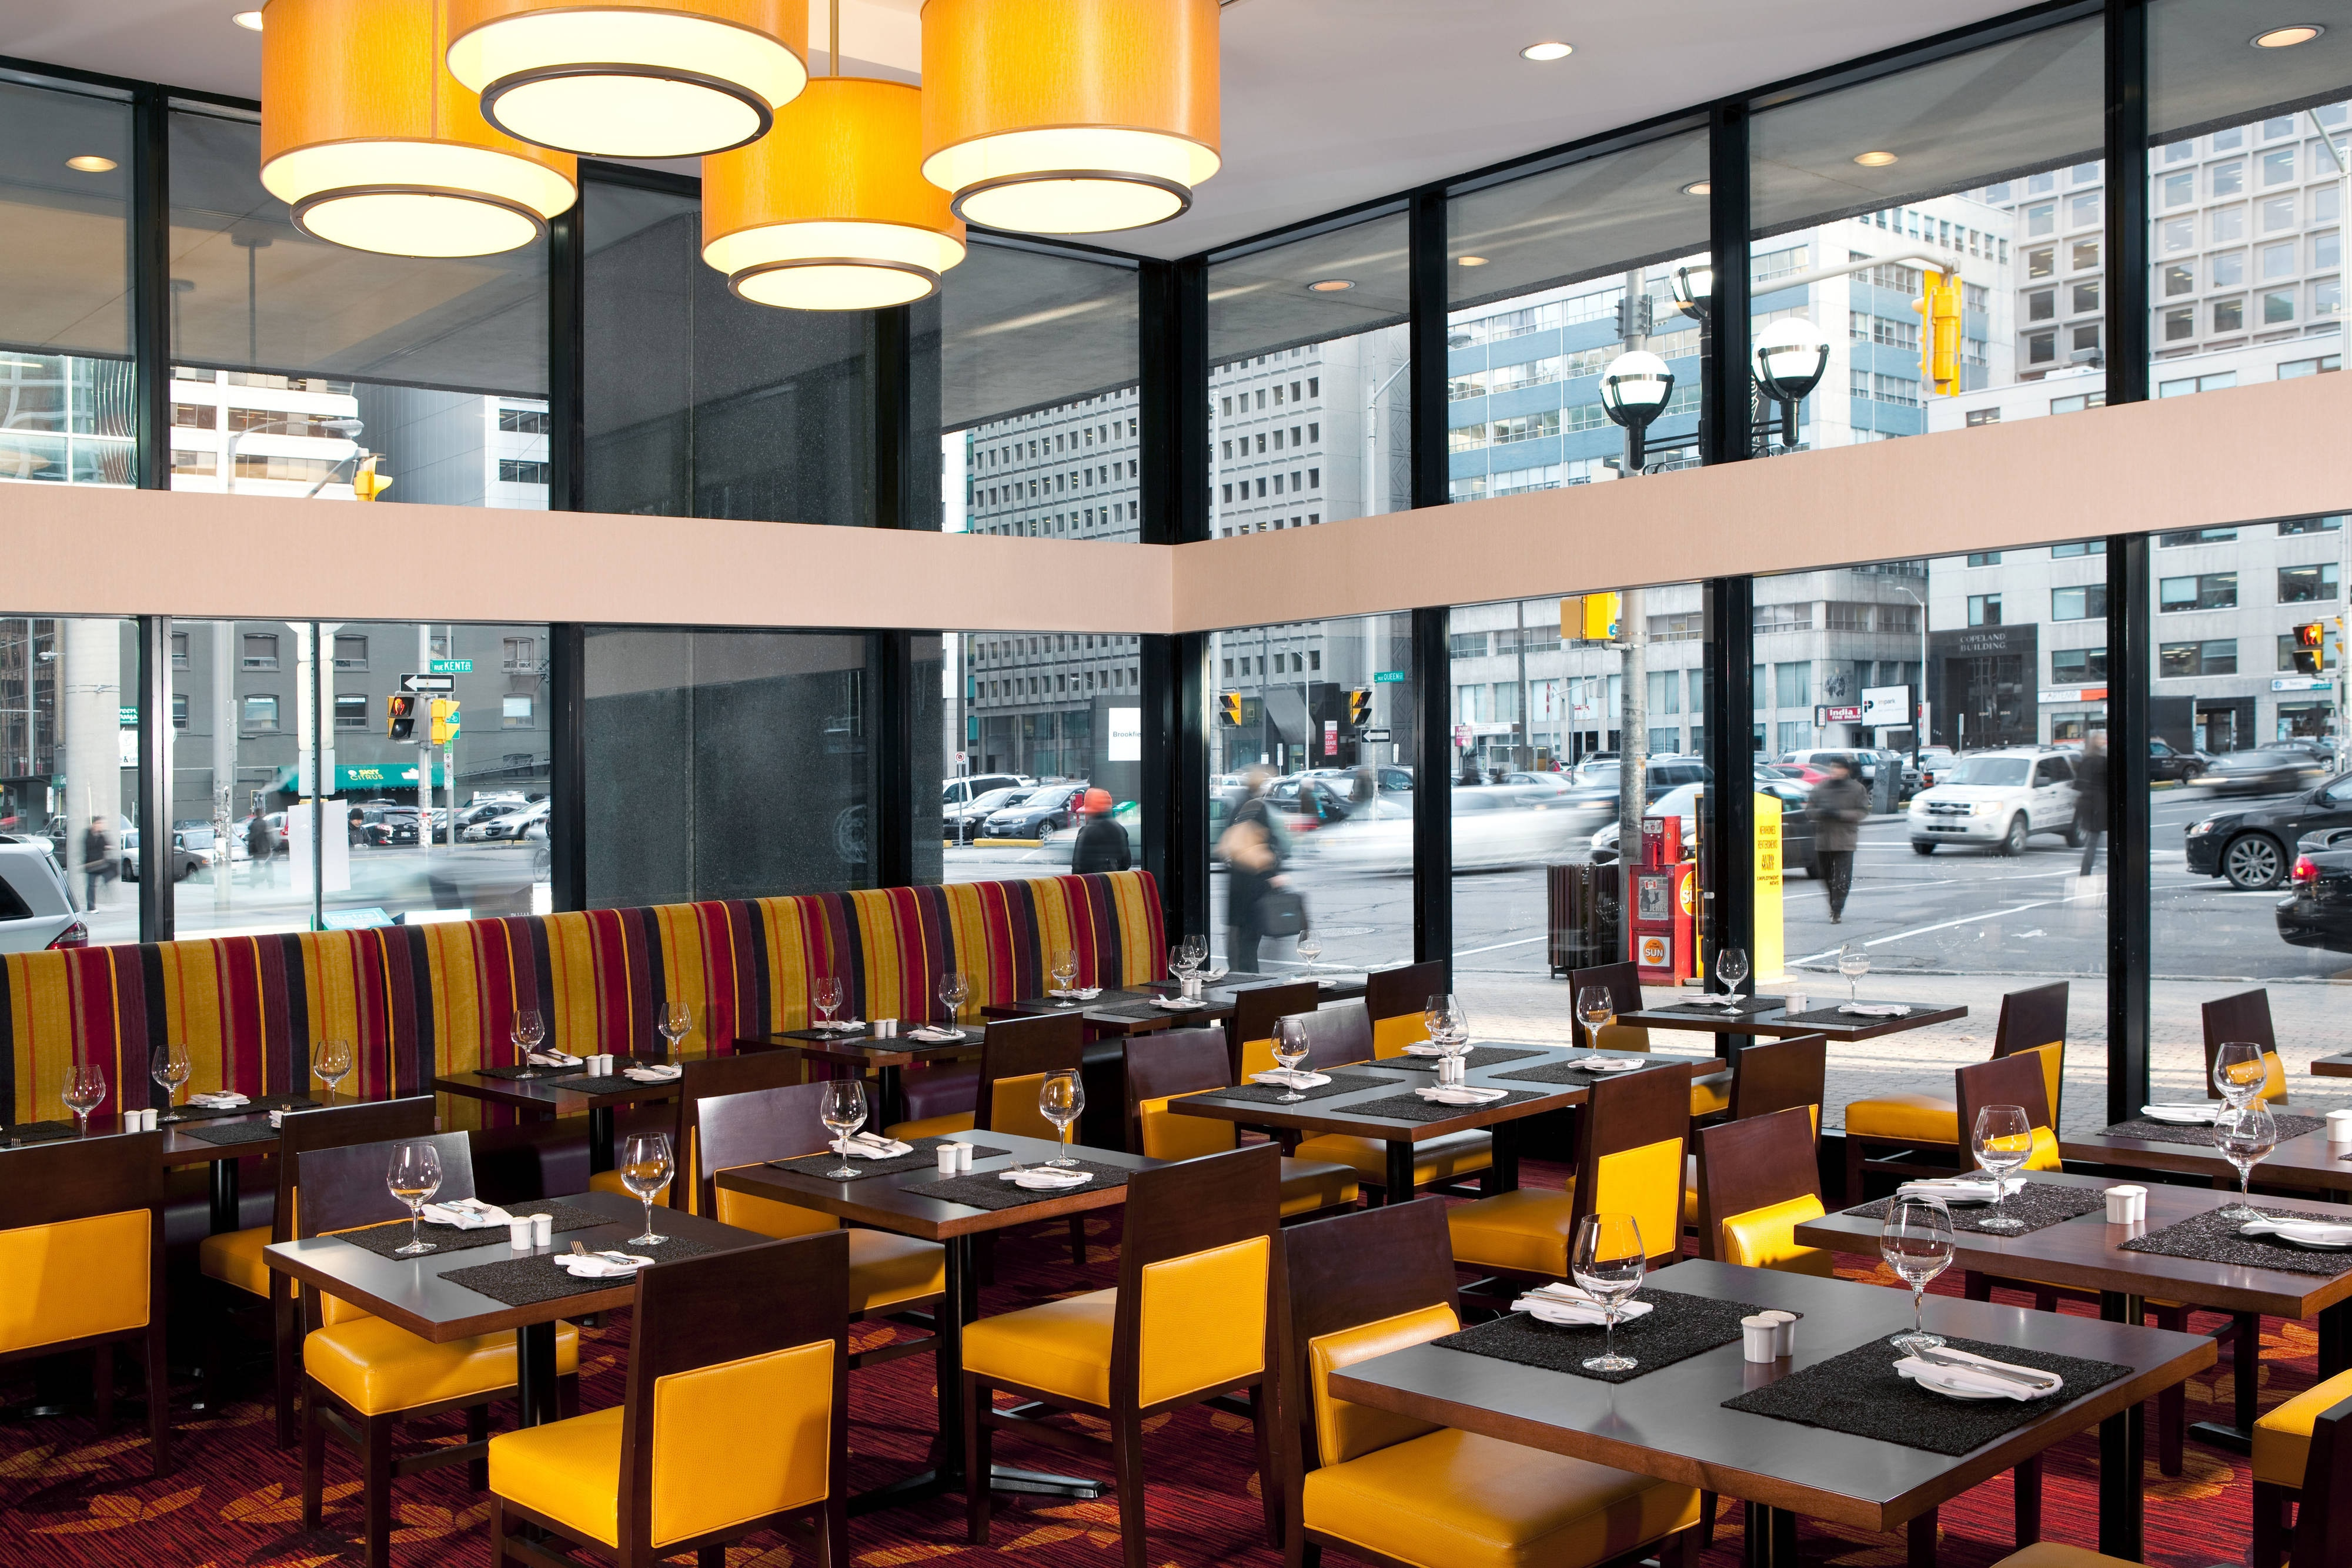 Dining downtown Ottawa Ontario hotels